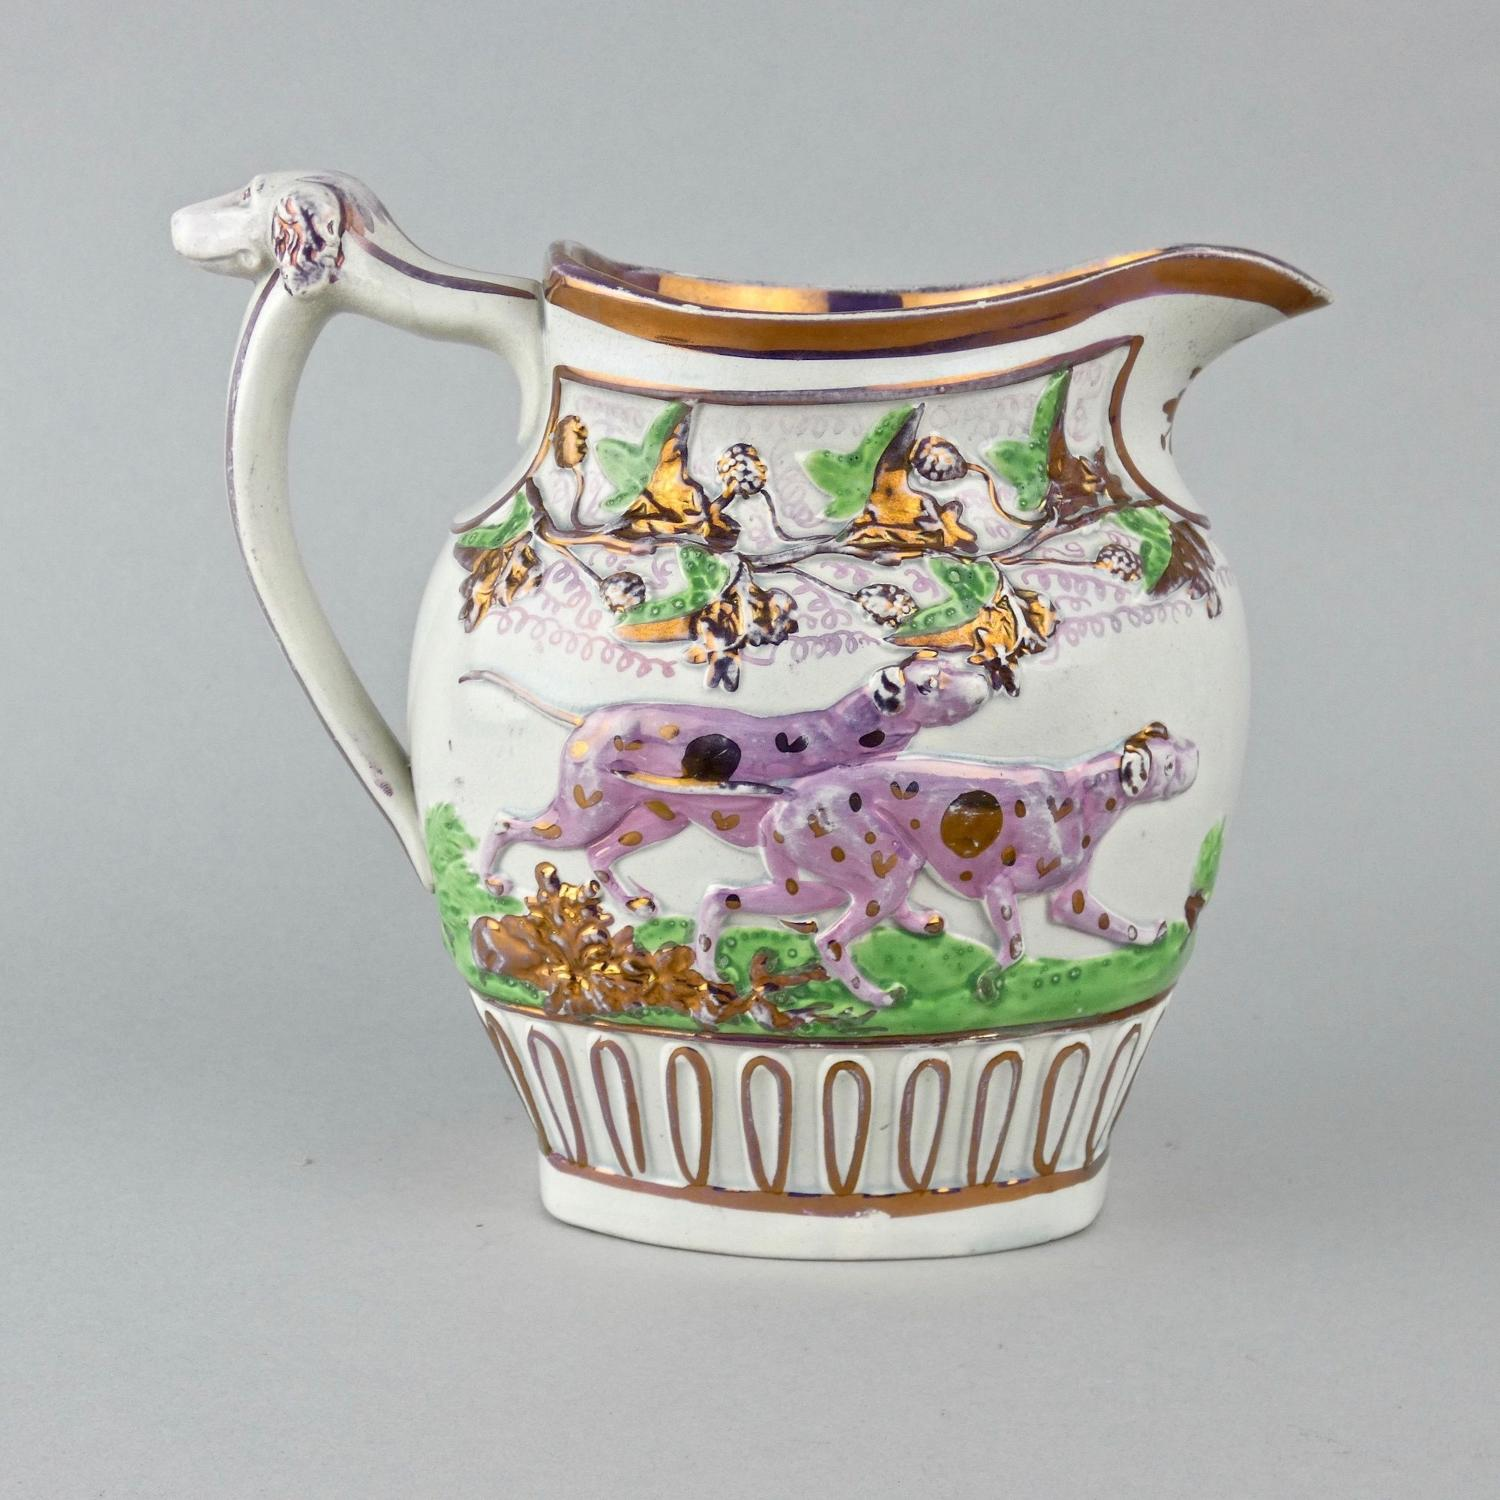 Pink lustre jug with dog's head handle